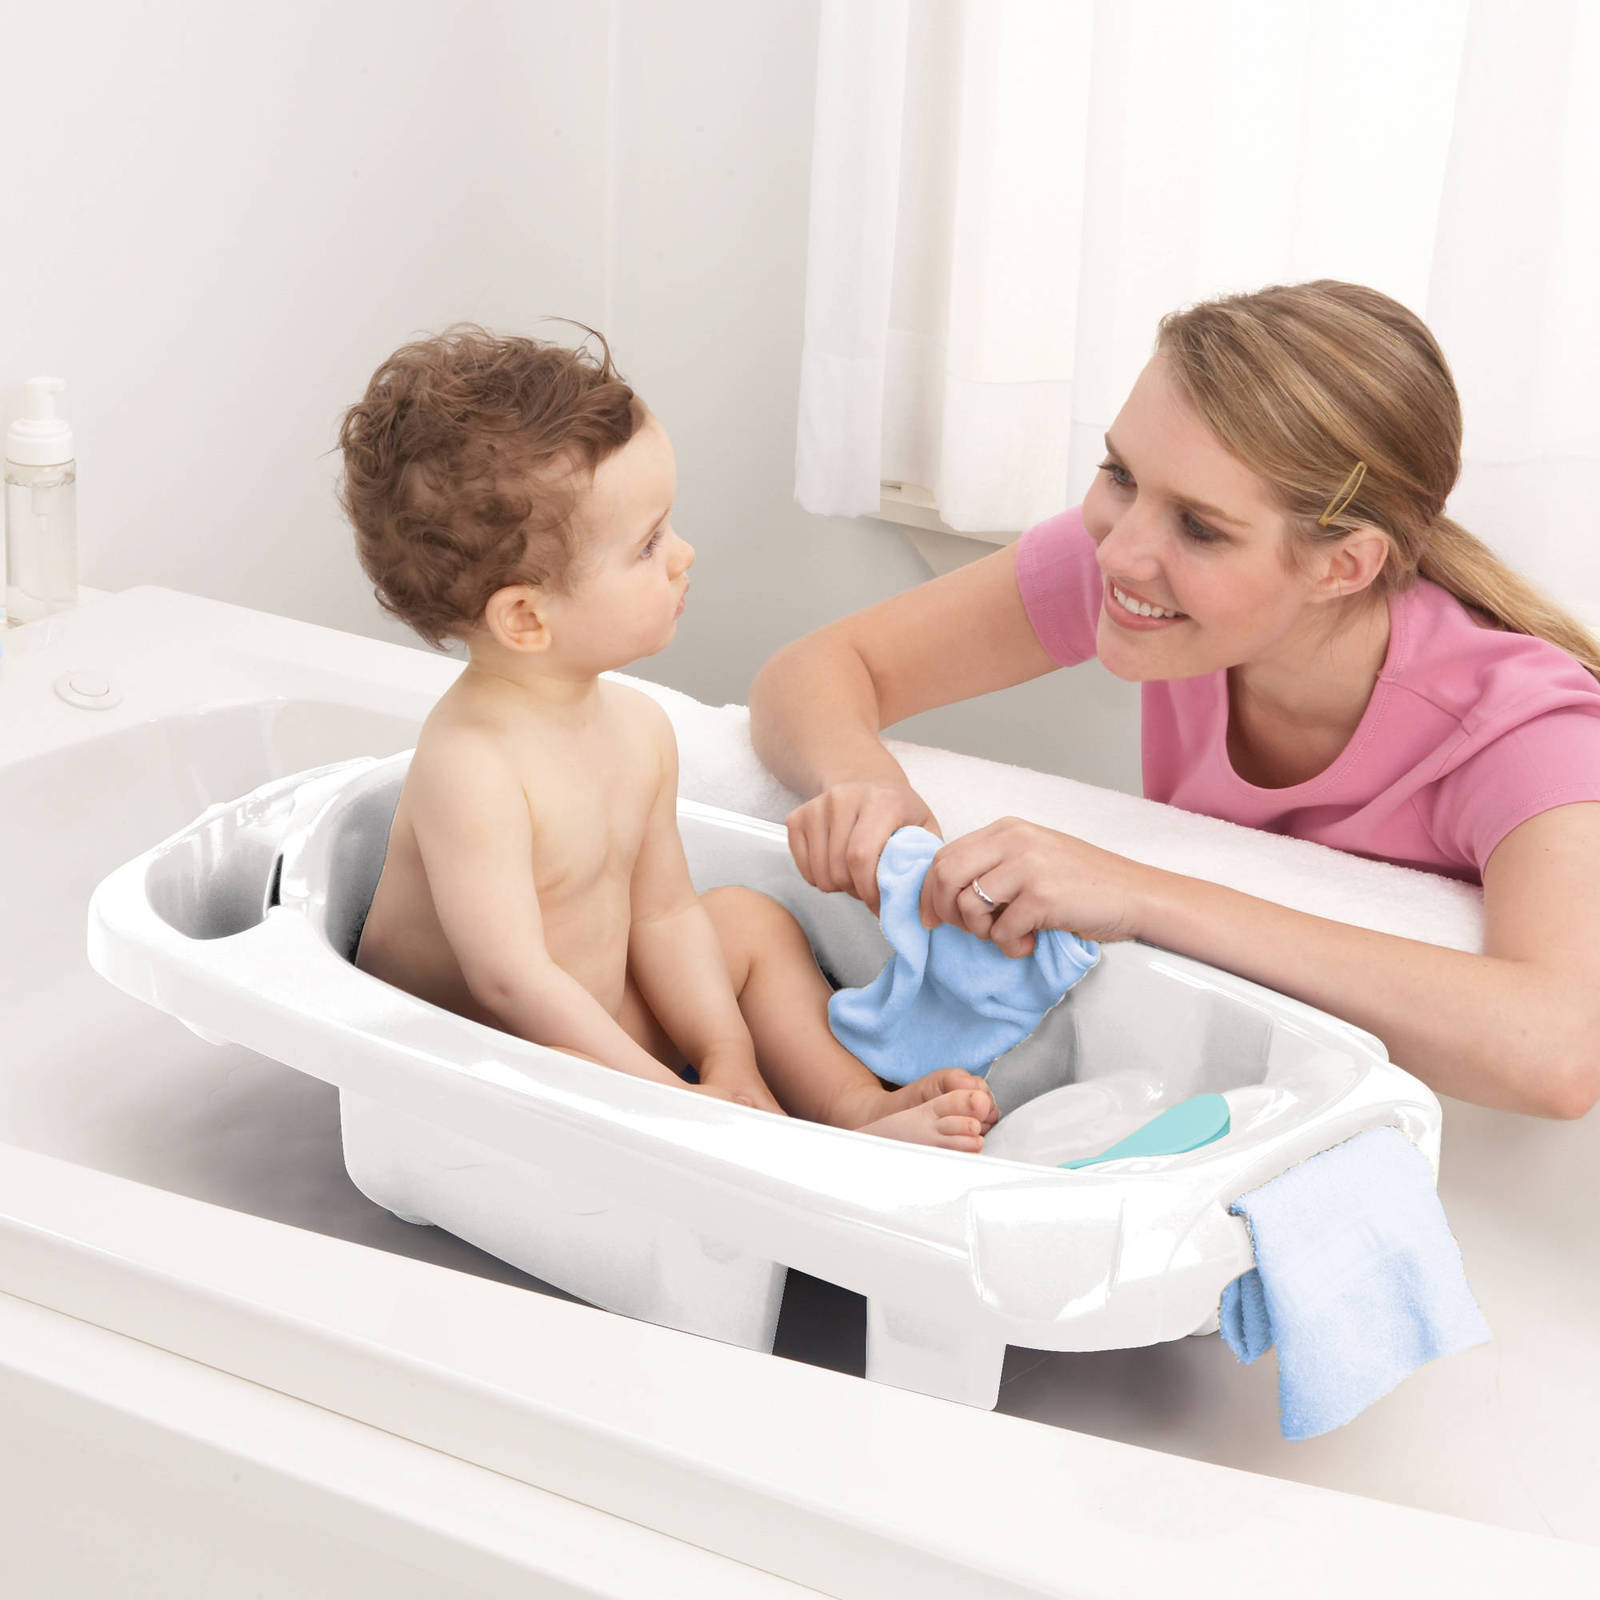 baby bath tub 1 year newborn infant child toddler shower bathtub bathing nursery bath tubs. Black Bedroom Furniture Sets. Home Design Ideas